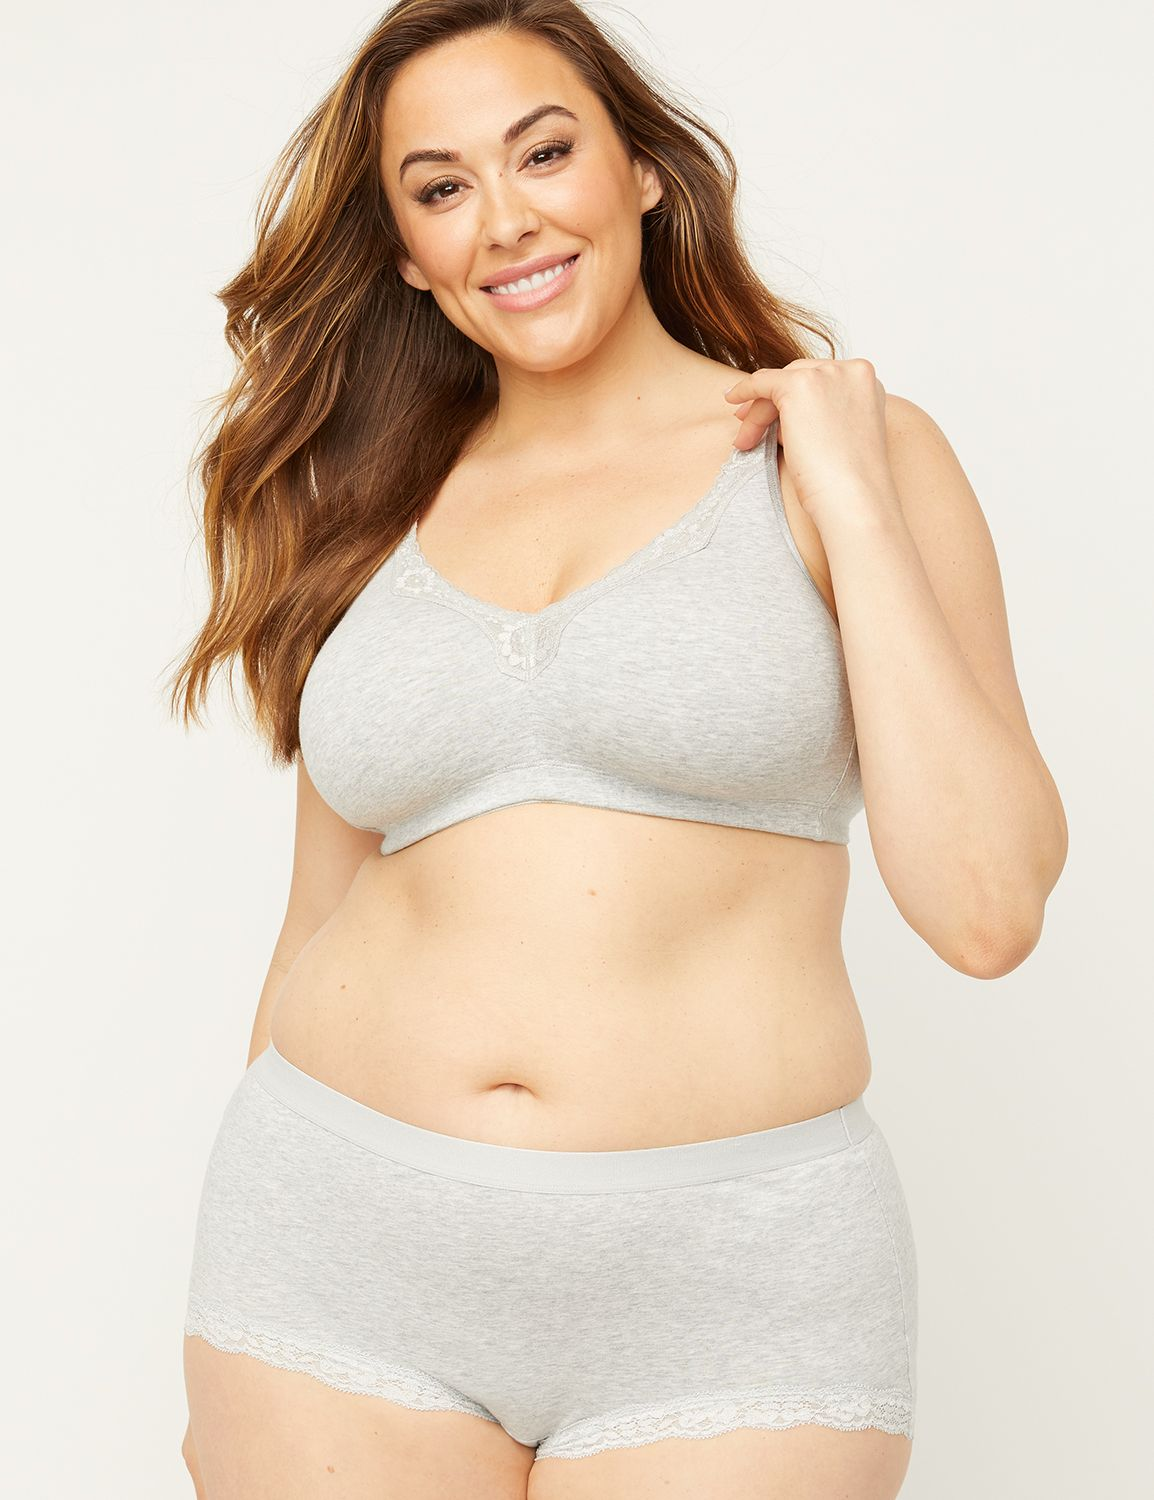 Plus Size Bras - Best Bra Styles For Plus Size Women | Catherines